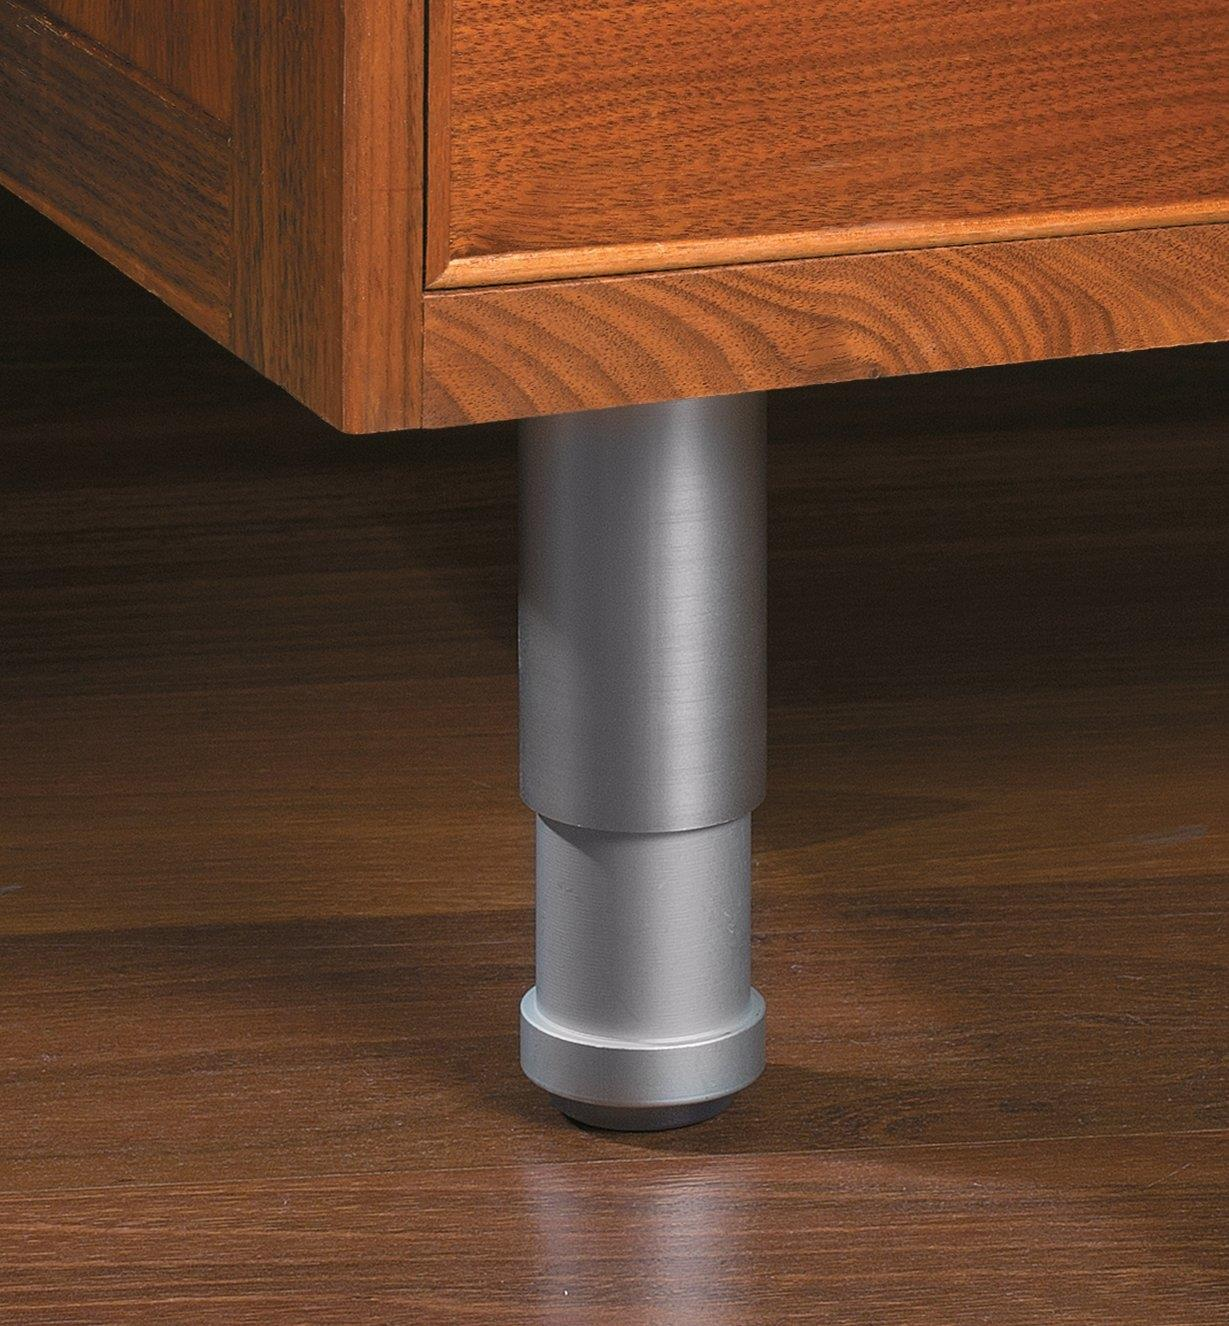 Example of a satin aluminum leg supporting a furniture piece